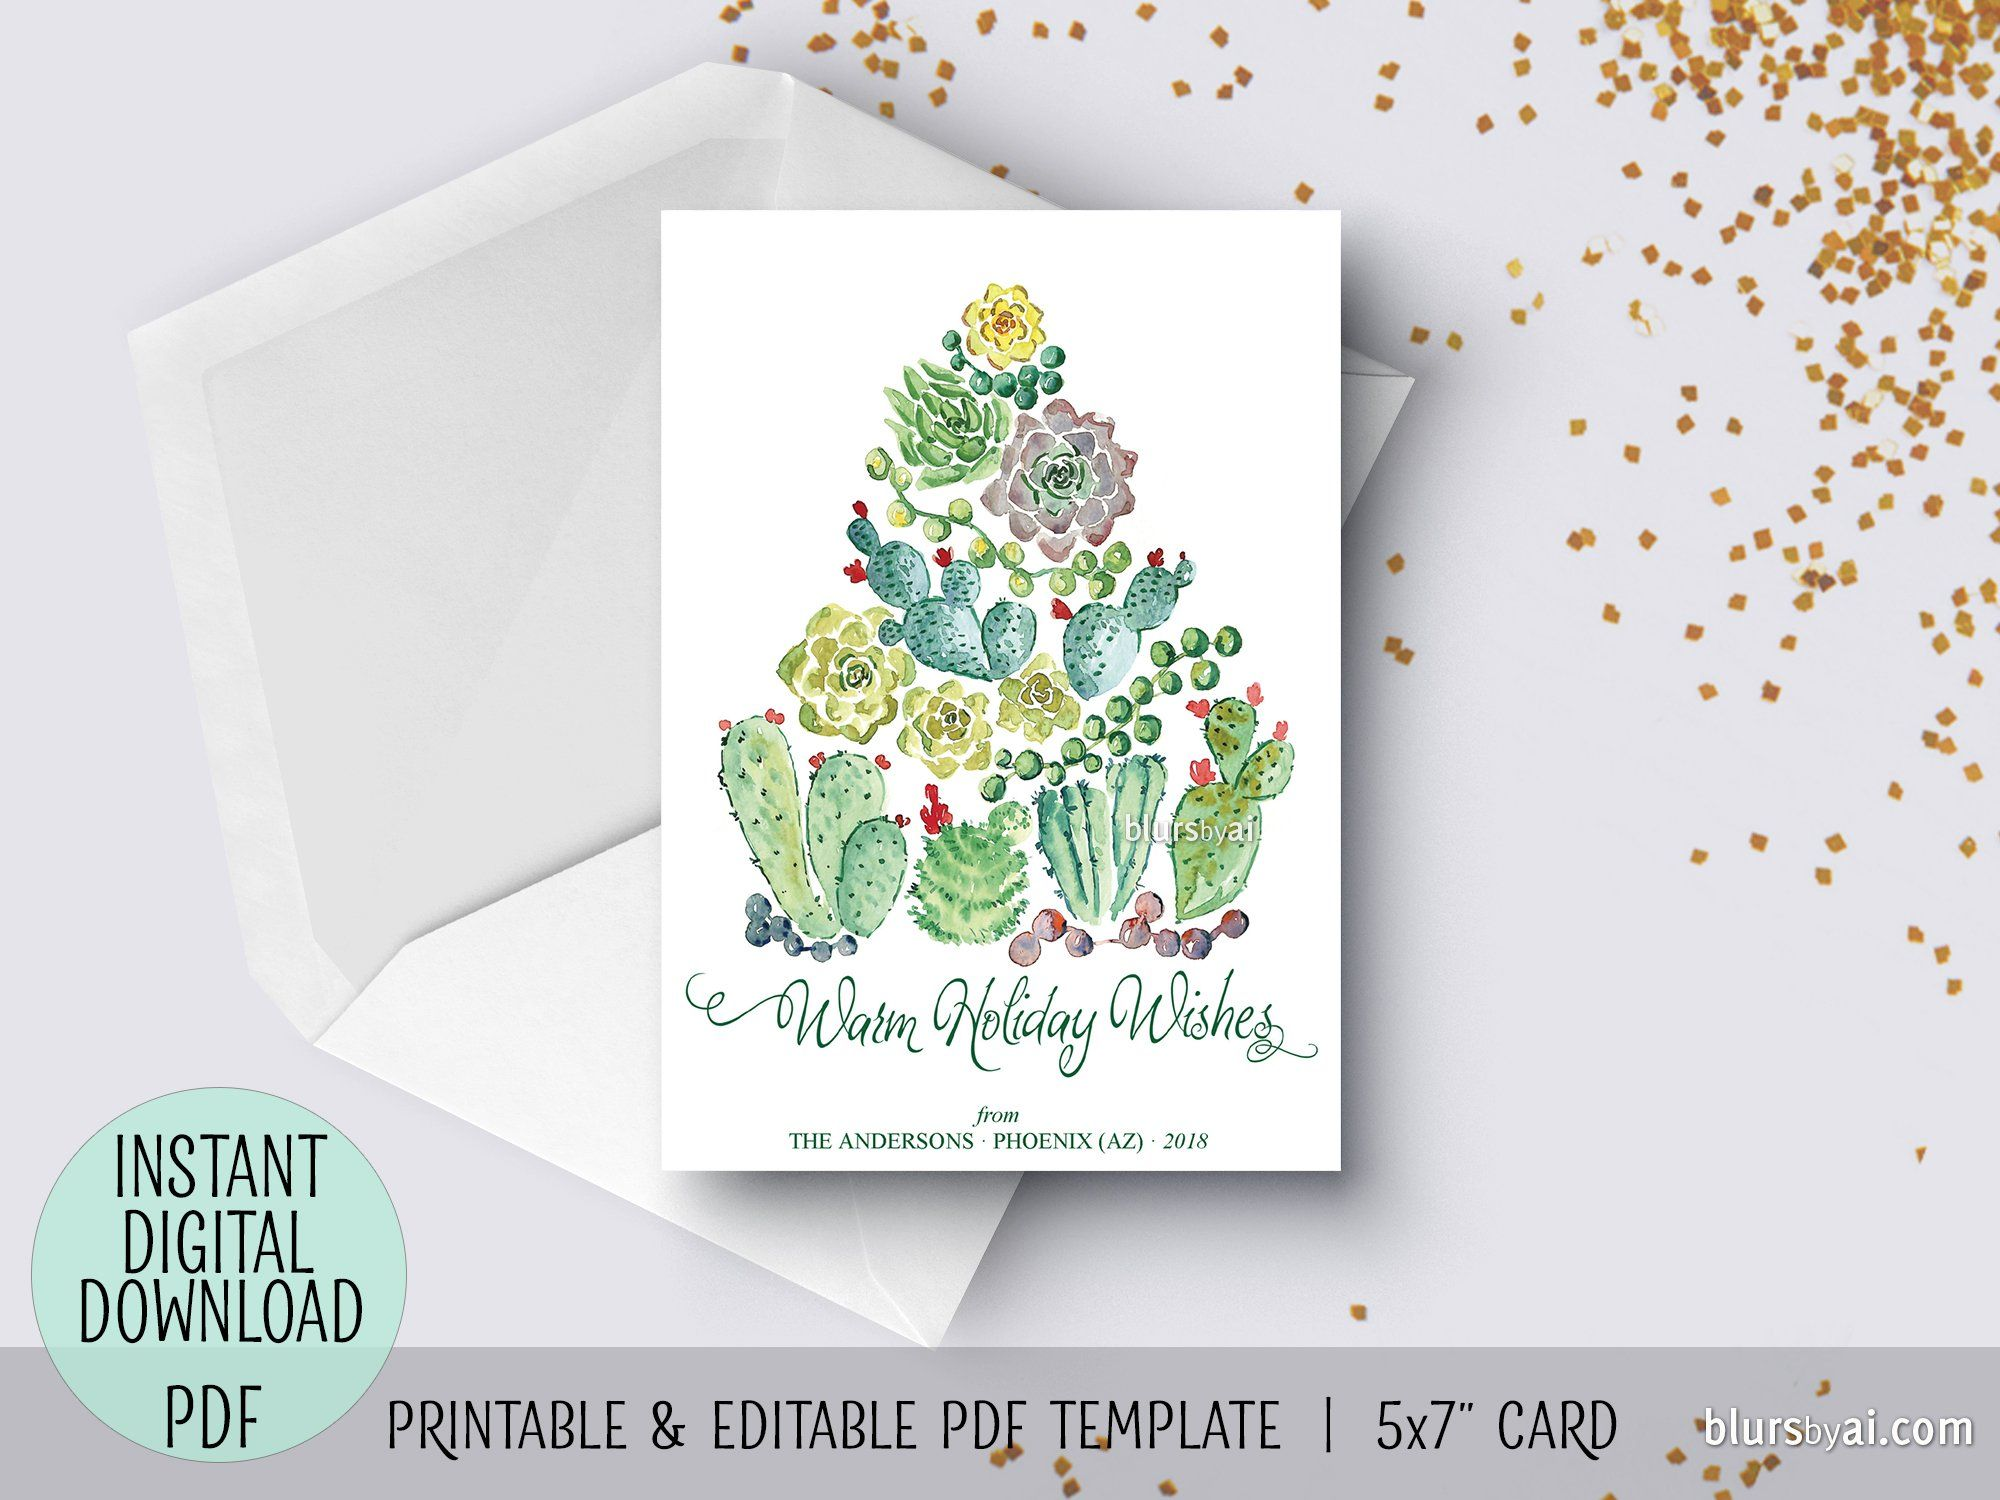 Editable Pdf Christmas Card Template Cacti And Succulents Watercolor Christmas Tree Christmas Card Template Watercolor Christmas Tree Christmas Watercolor